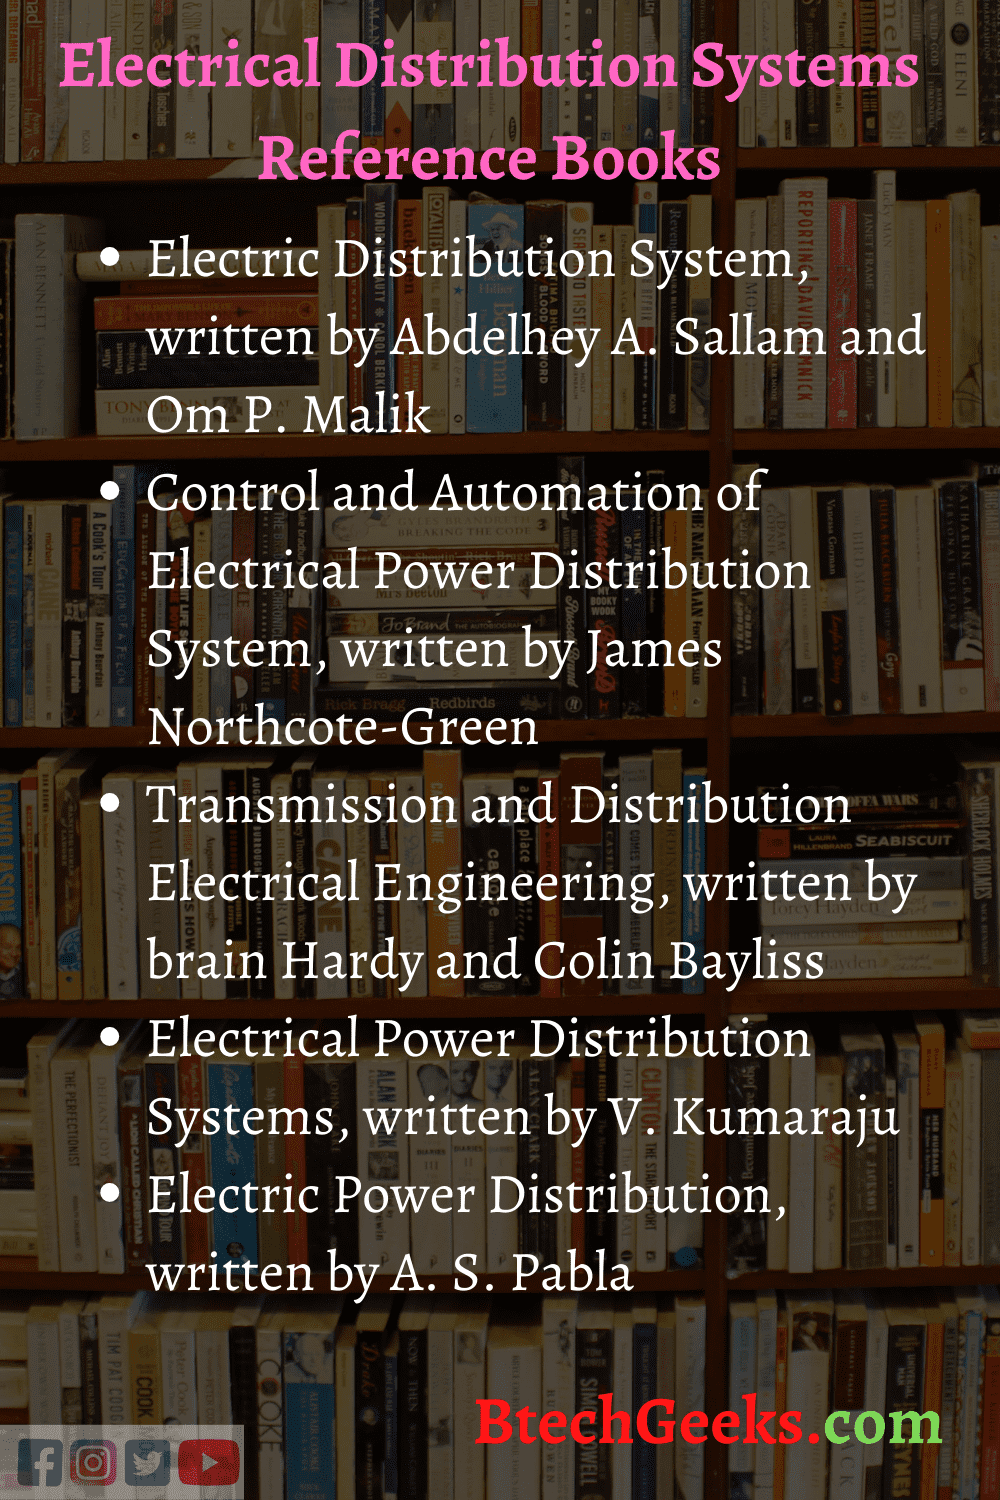 Electrical Distribution Systems Reference Books